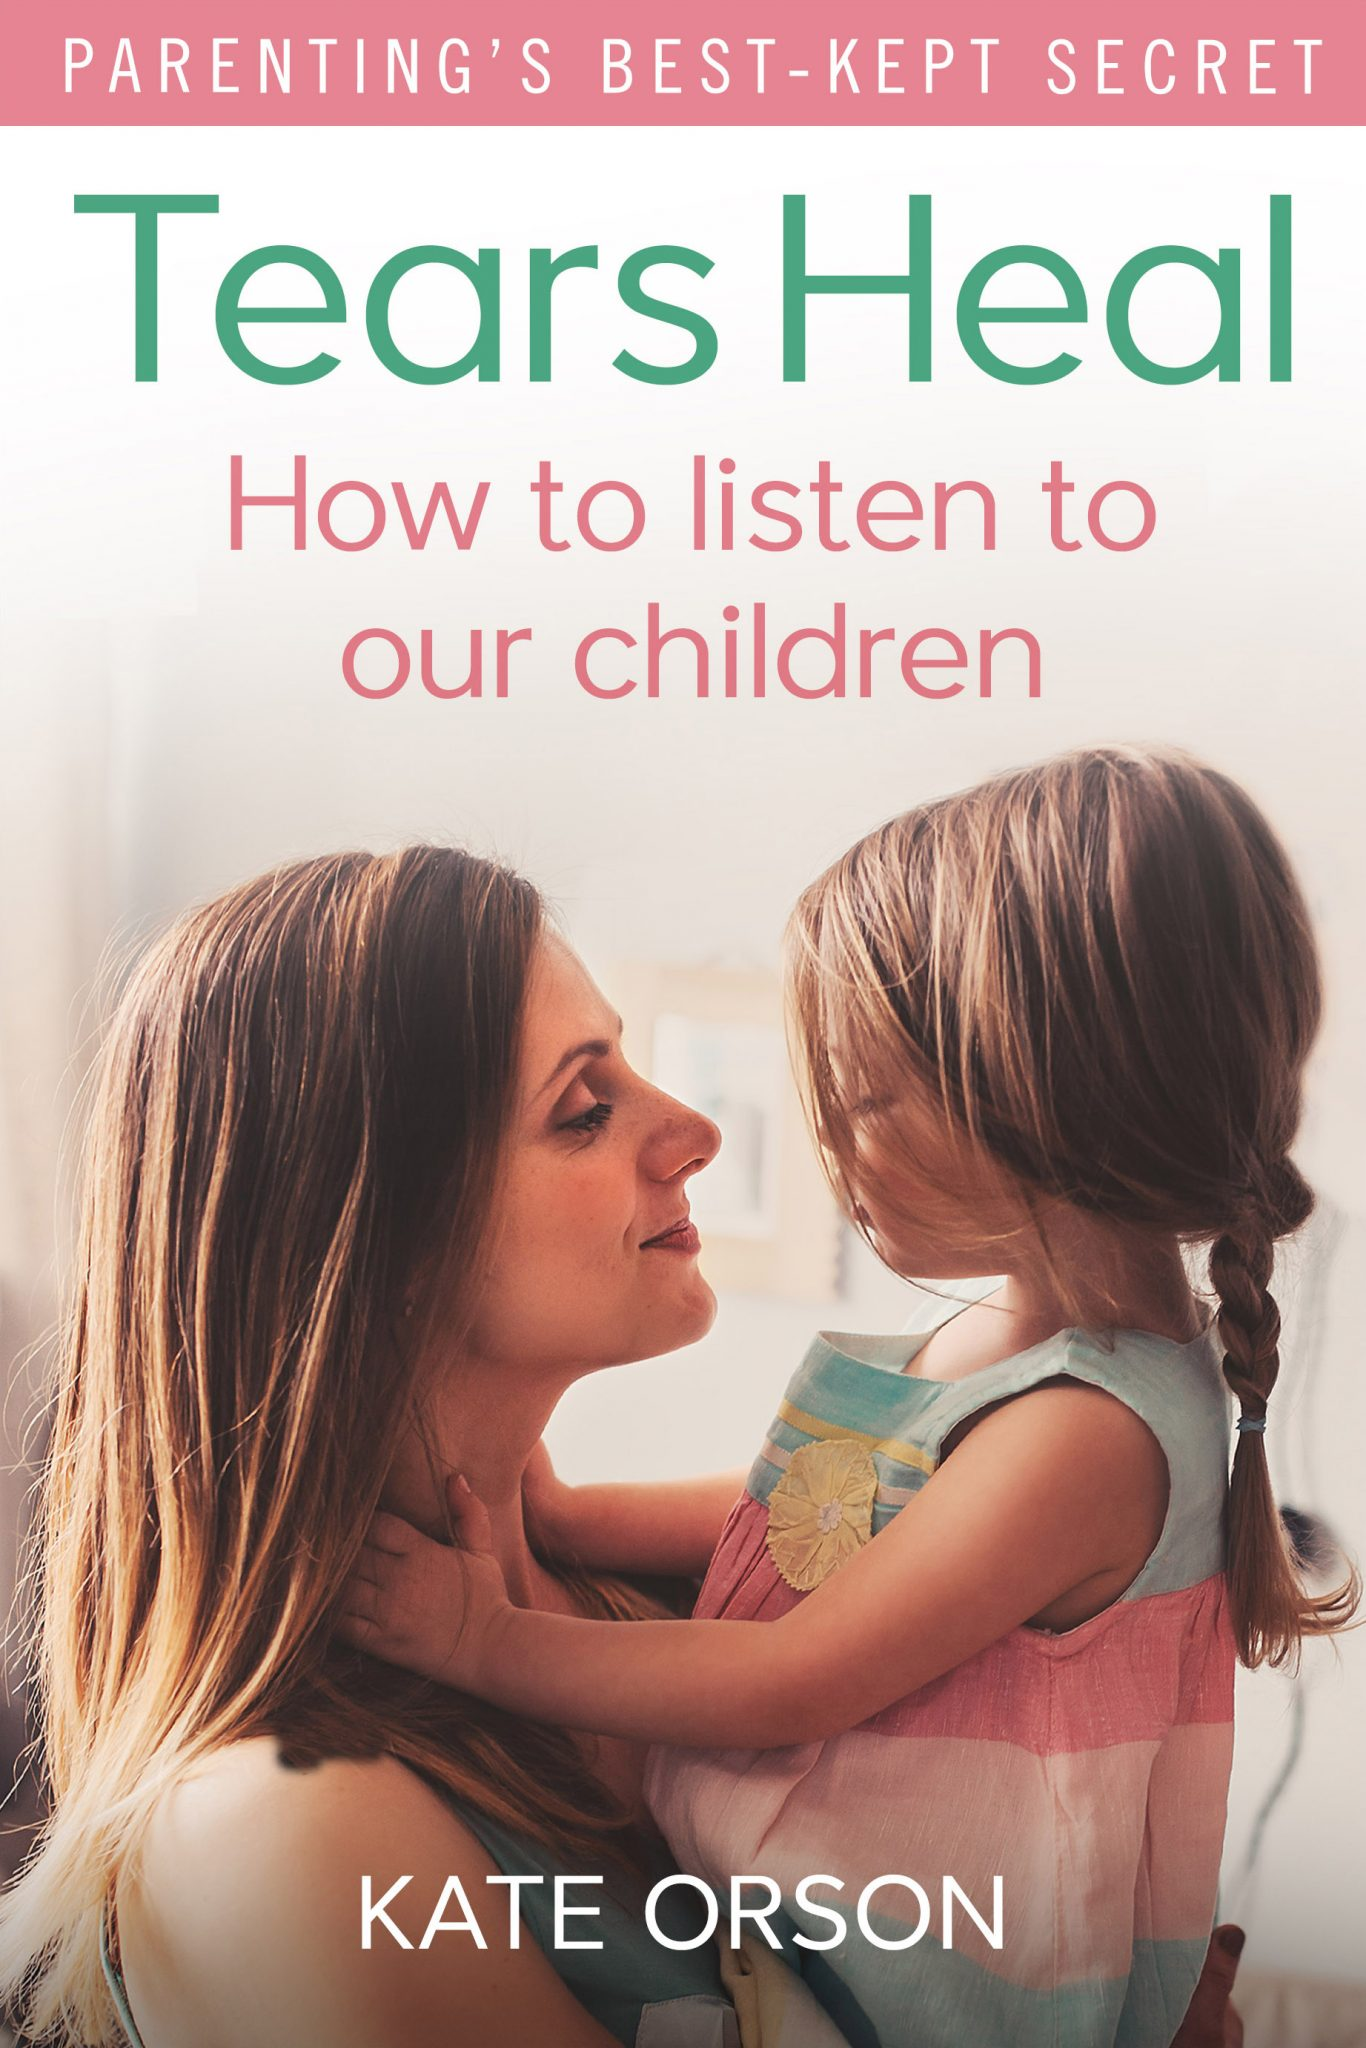 Kate Orson's book, Tears Heal, helps parents learn to transform their parenting by moving away from stopping feelings, towards listening to their children instead.